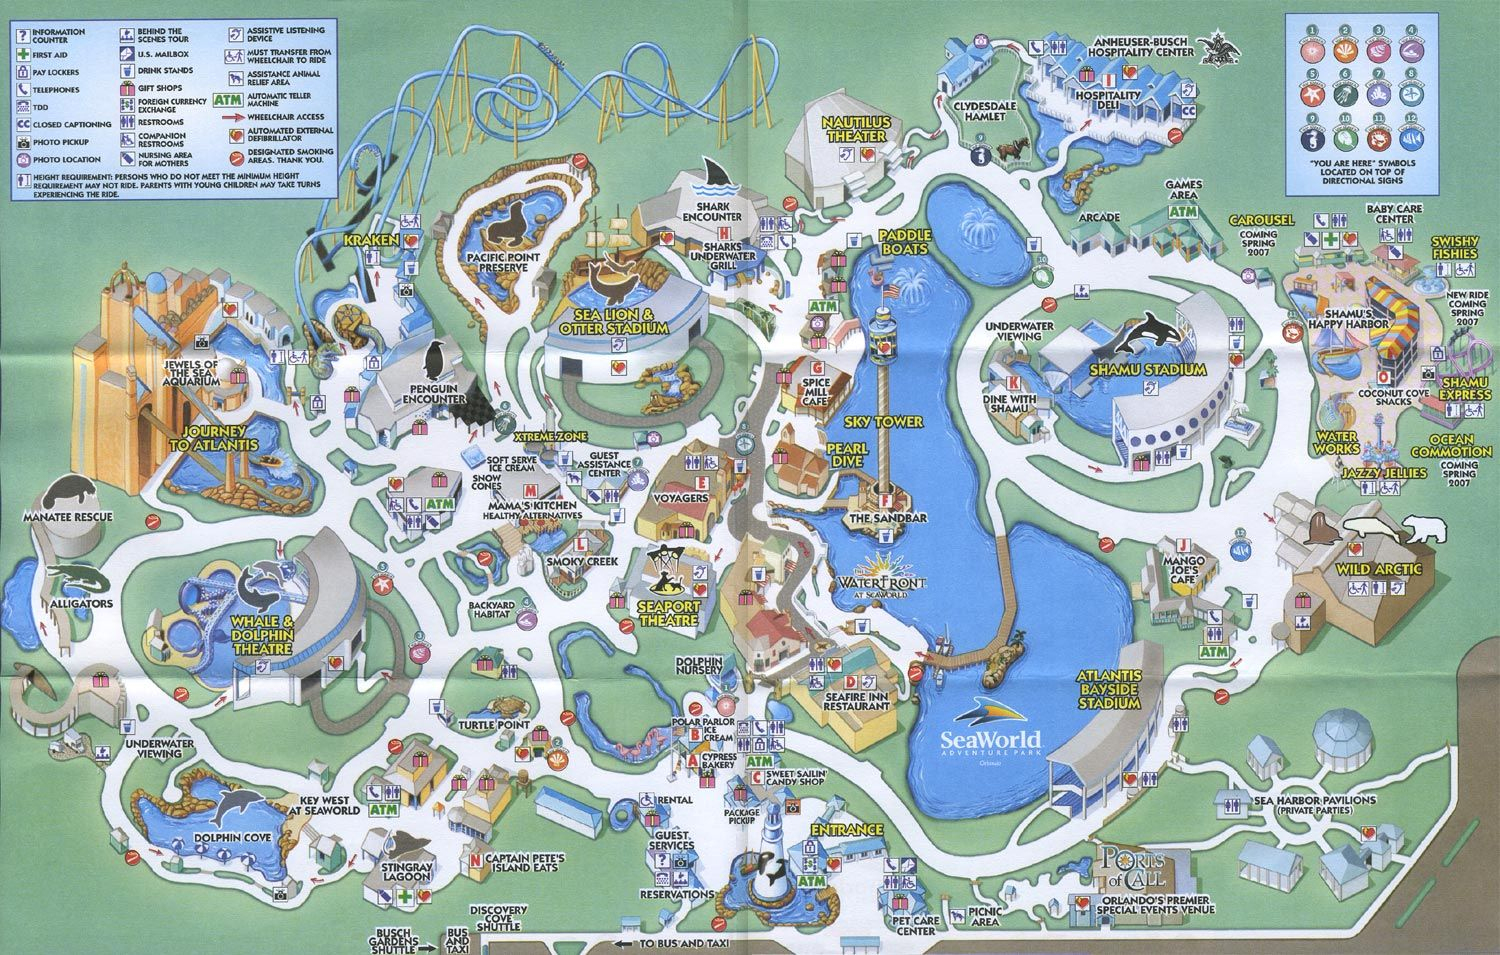 Sea World Orlando - Theme Park Brochures | Disney Vacation - Seaworld Orlando Map 2017 Printable